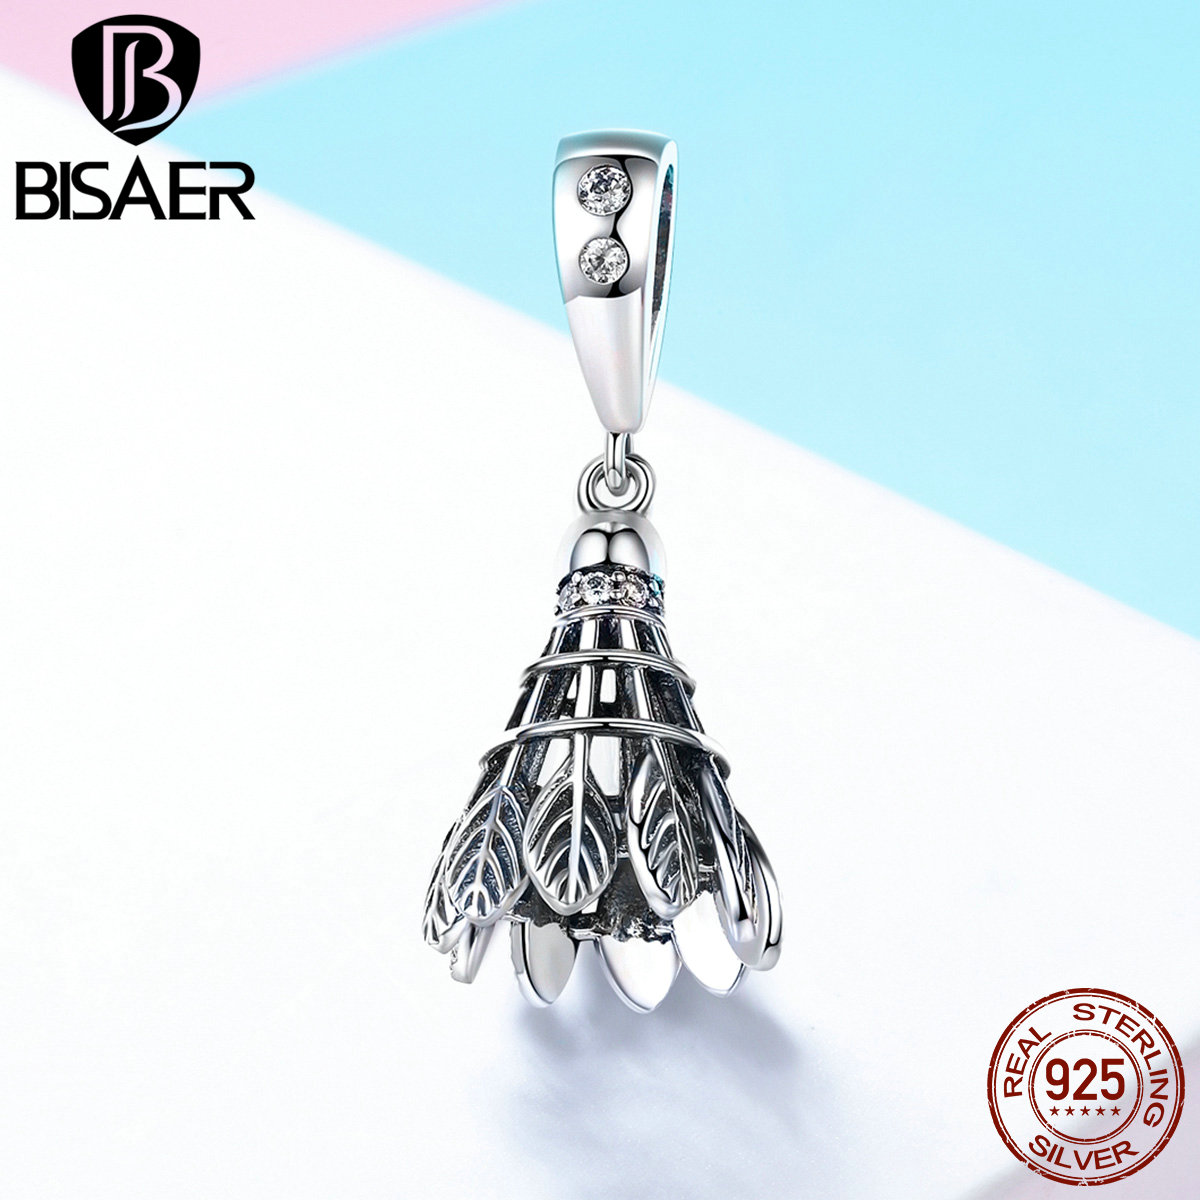 Charm 925 Sterling Silver Retro Sport Lover Badminton Pendant Charm for Women Bead Bracelet or Necklace Jewelry Making GXC807